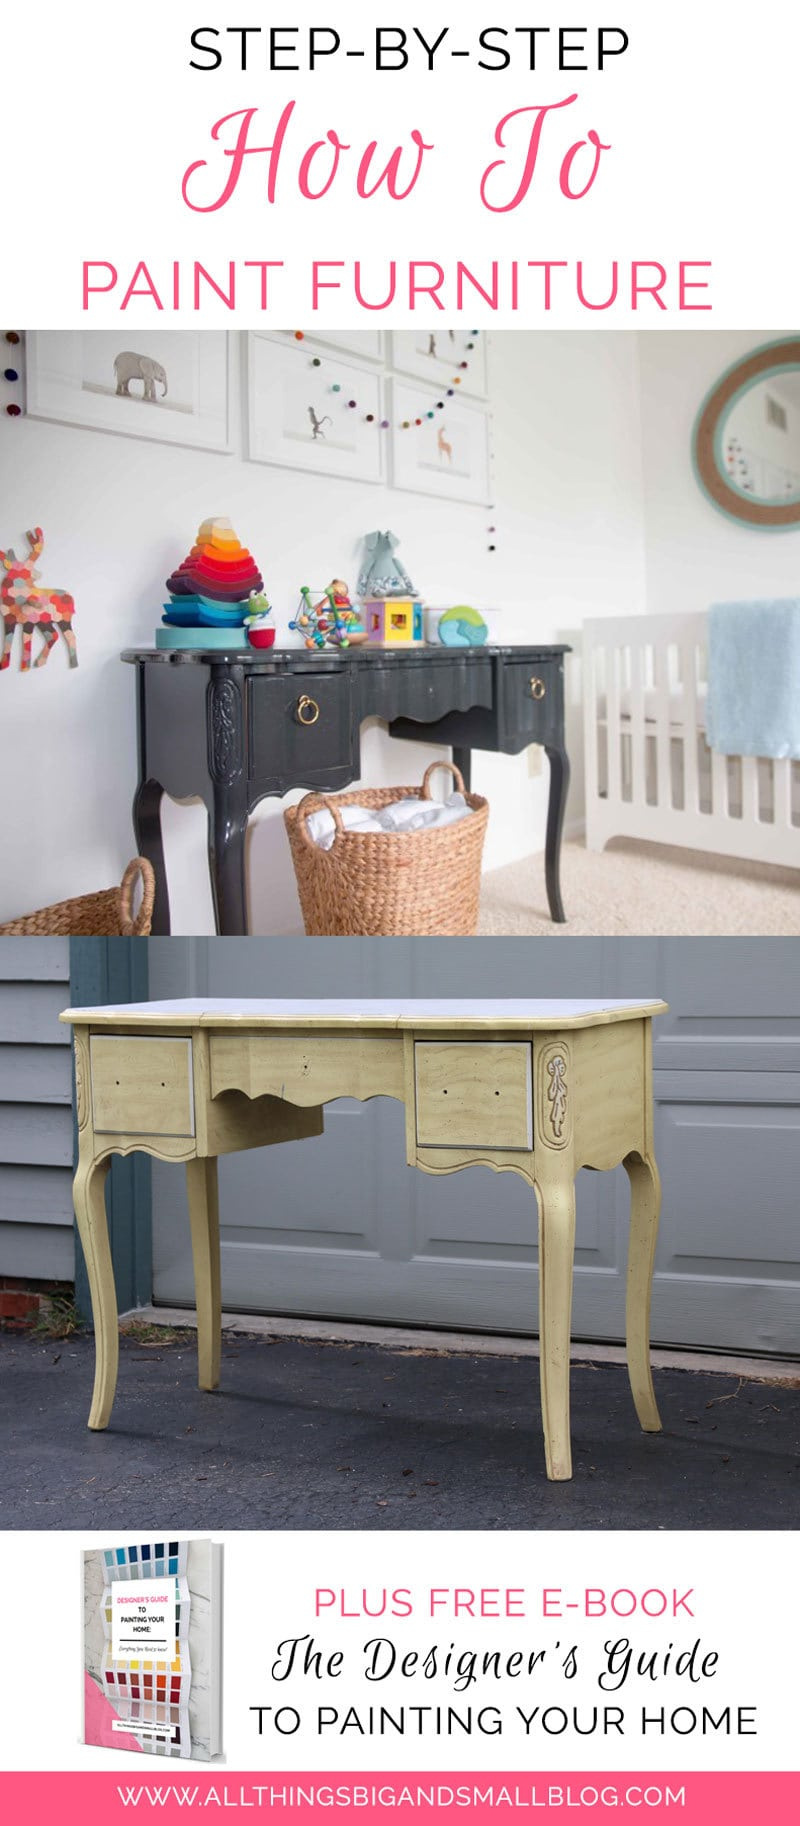 how to paint furniture | DIY paint furniture step-by-step tutorial for beginners | All Things Big and Small